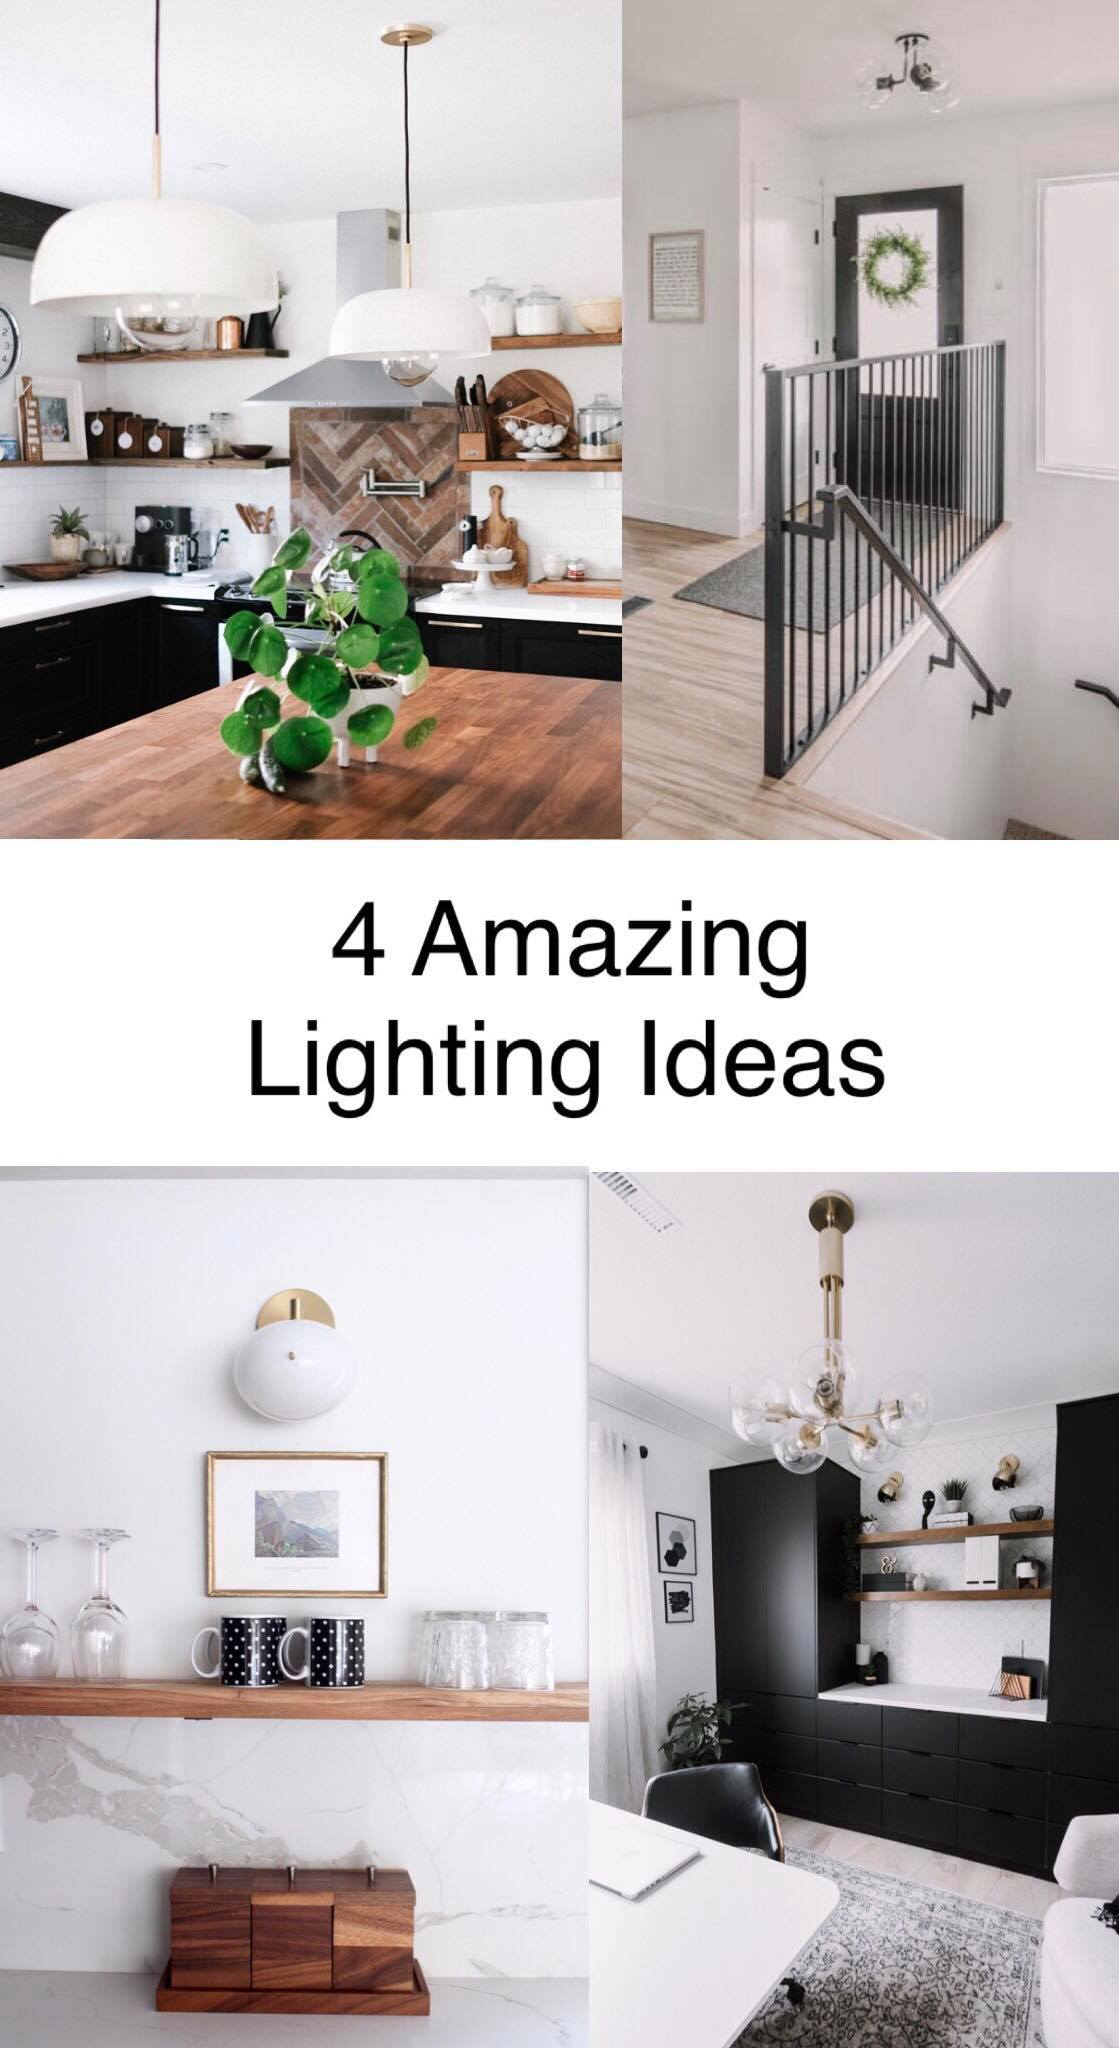 4 great articles about choosing lights! Love these spaces too